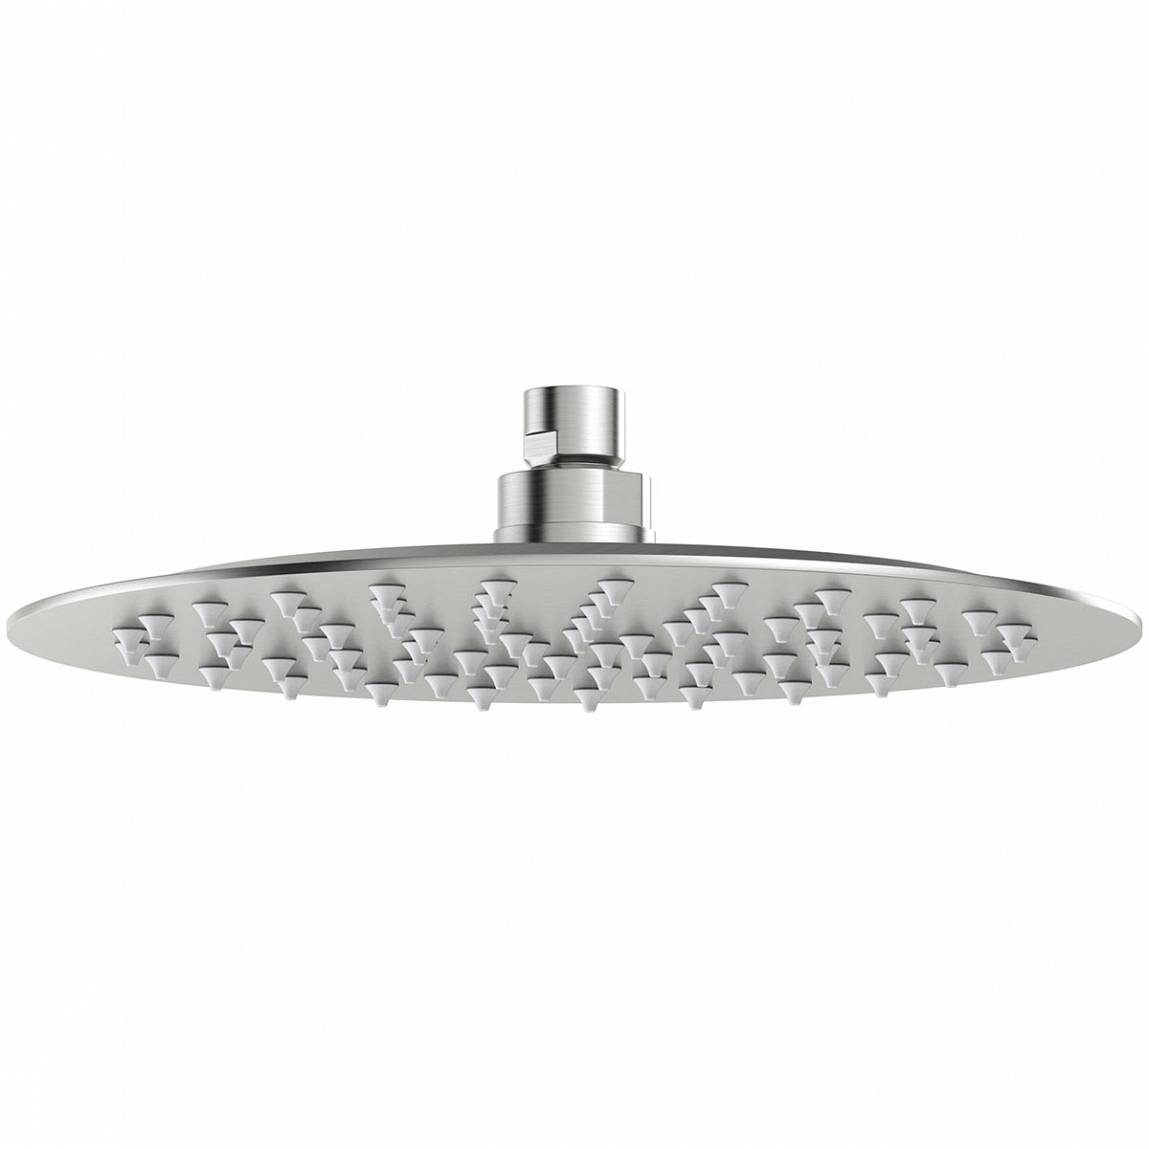 Image of Brushed Stainless Steel Waifer Shower Head Round 250mm